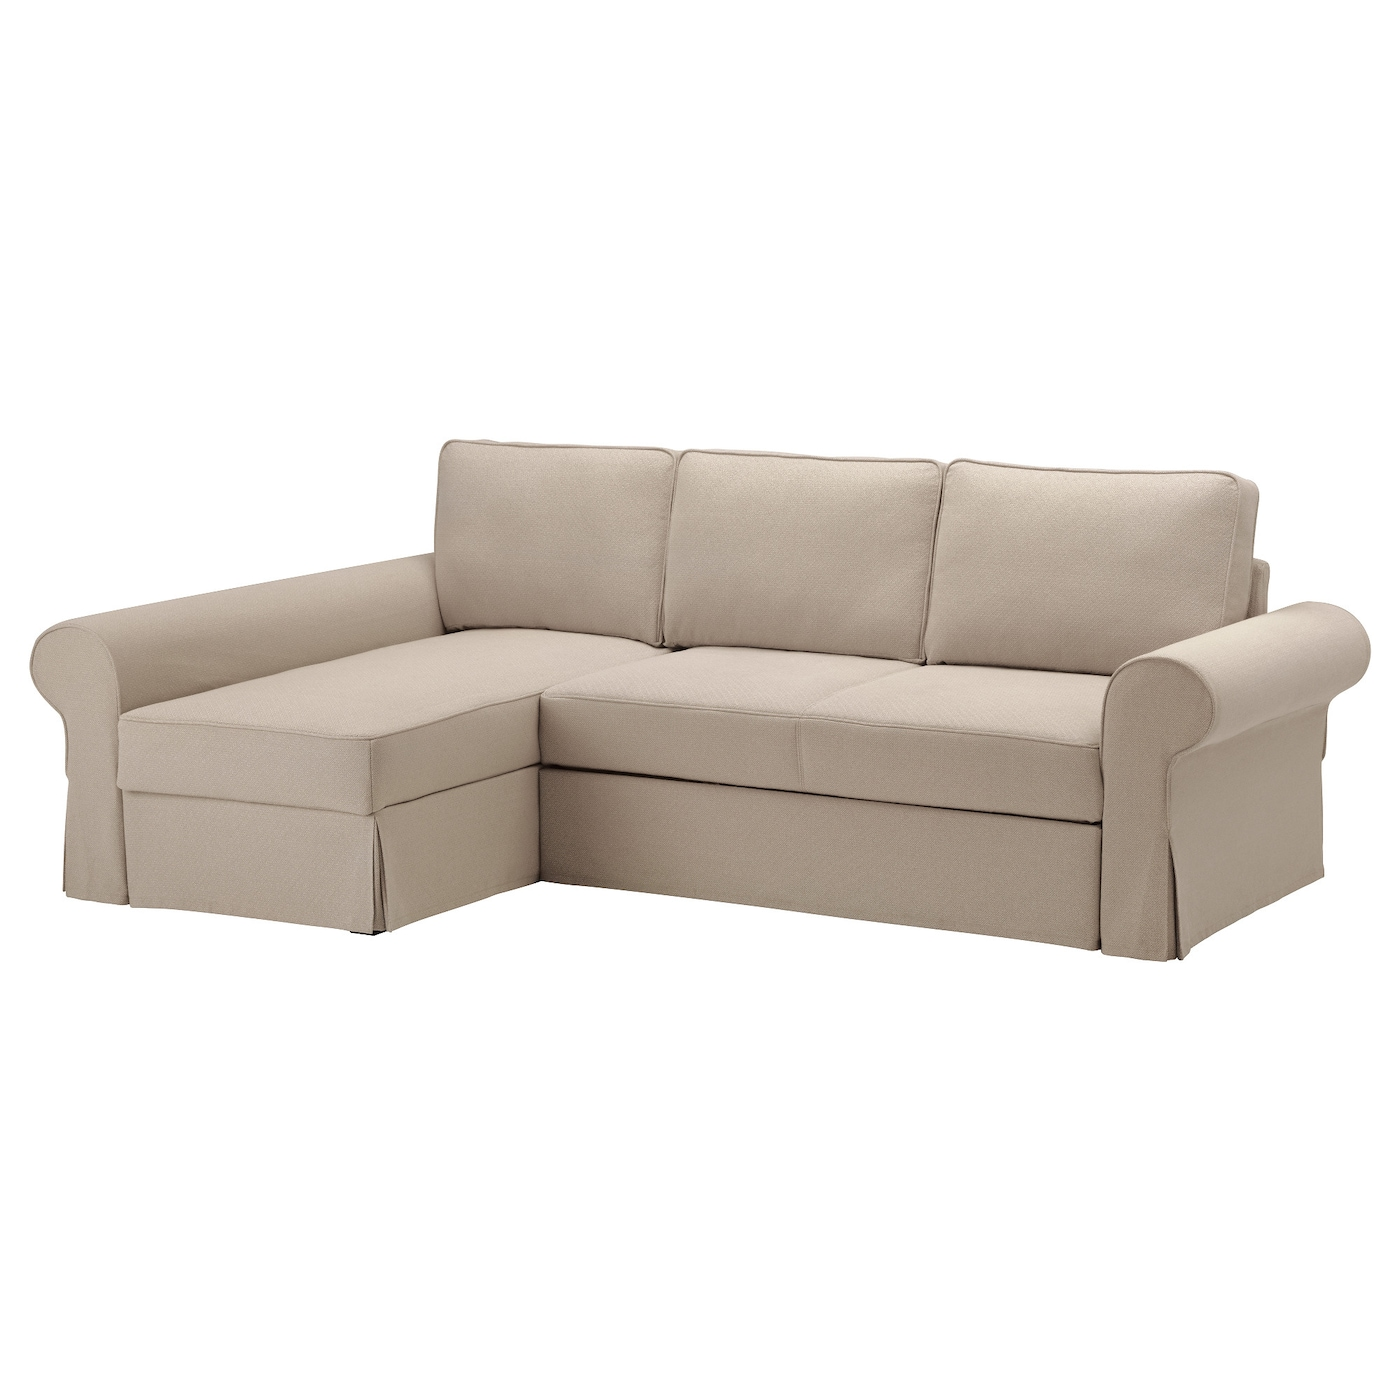 backabro cover sofa bed with chaise longue hylte beige ikea